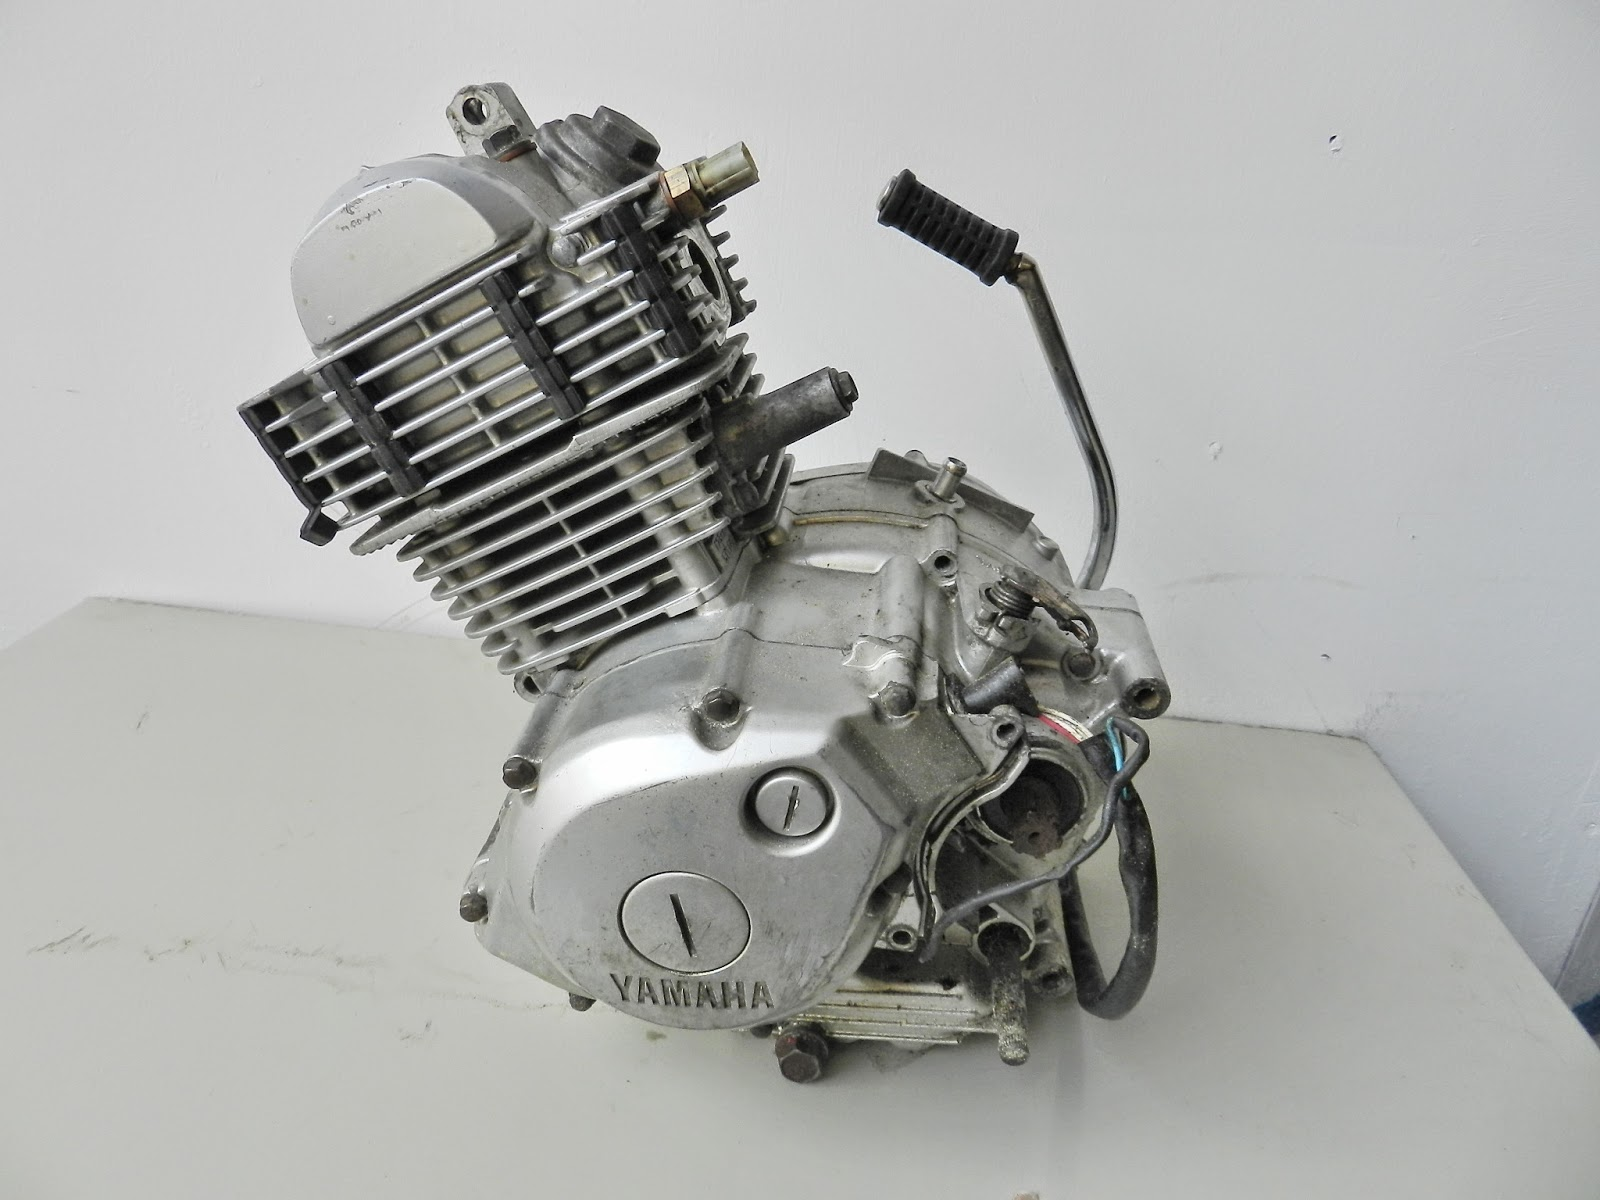 Yamaha YBR 125 Owner Blog : Yamaha YBR 125 blog valve clearance ...